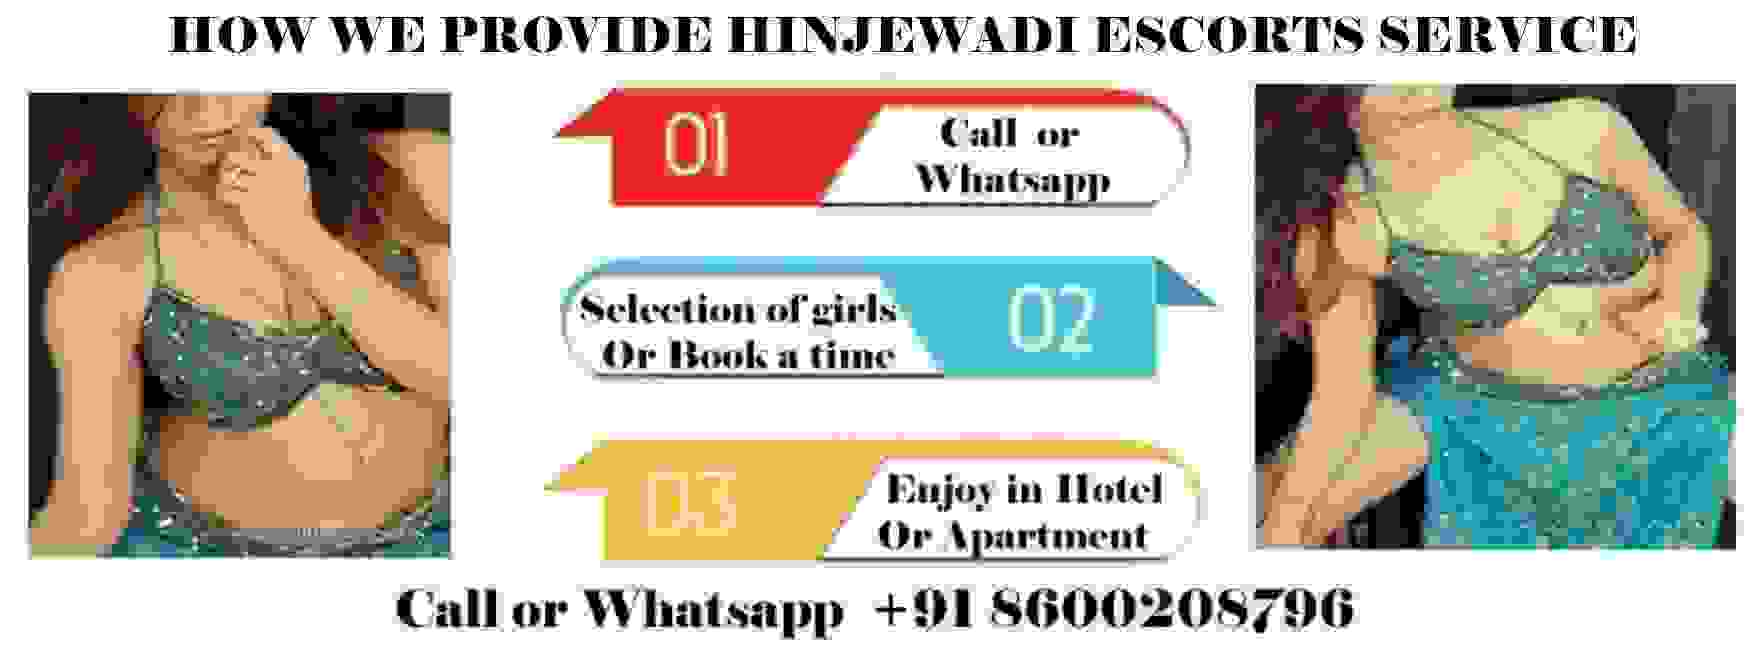 how we provide hinjewadi escorts service